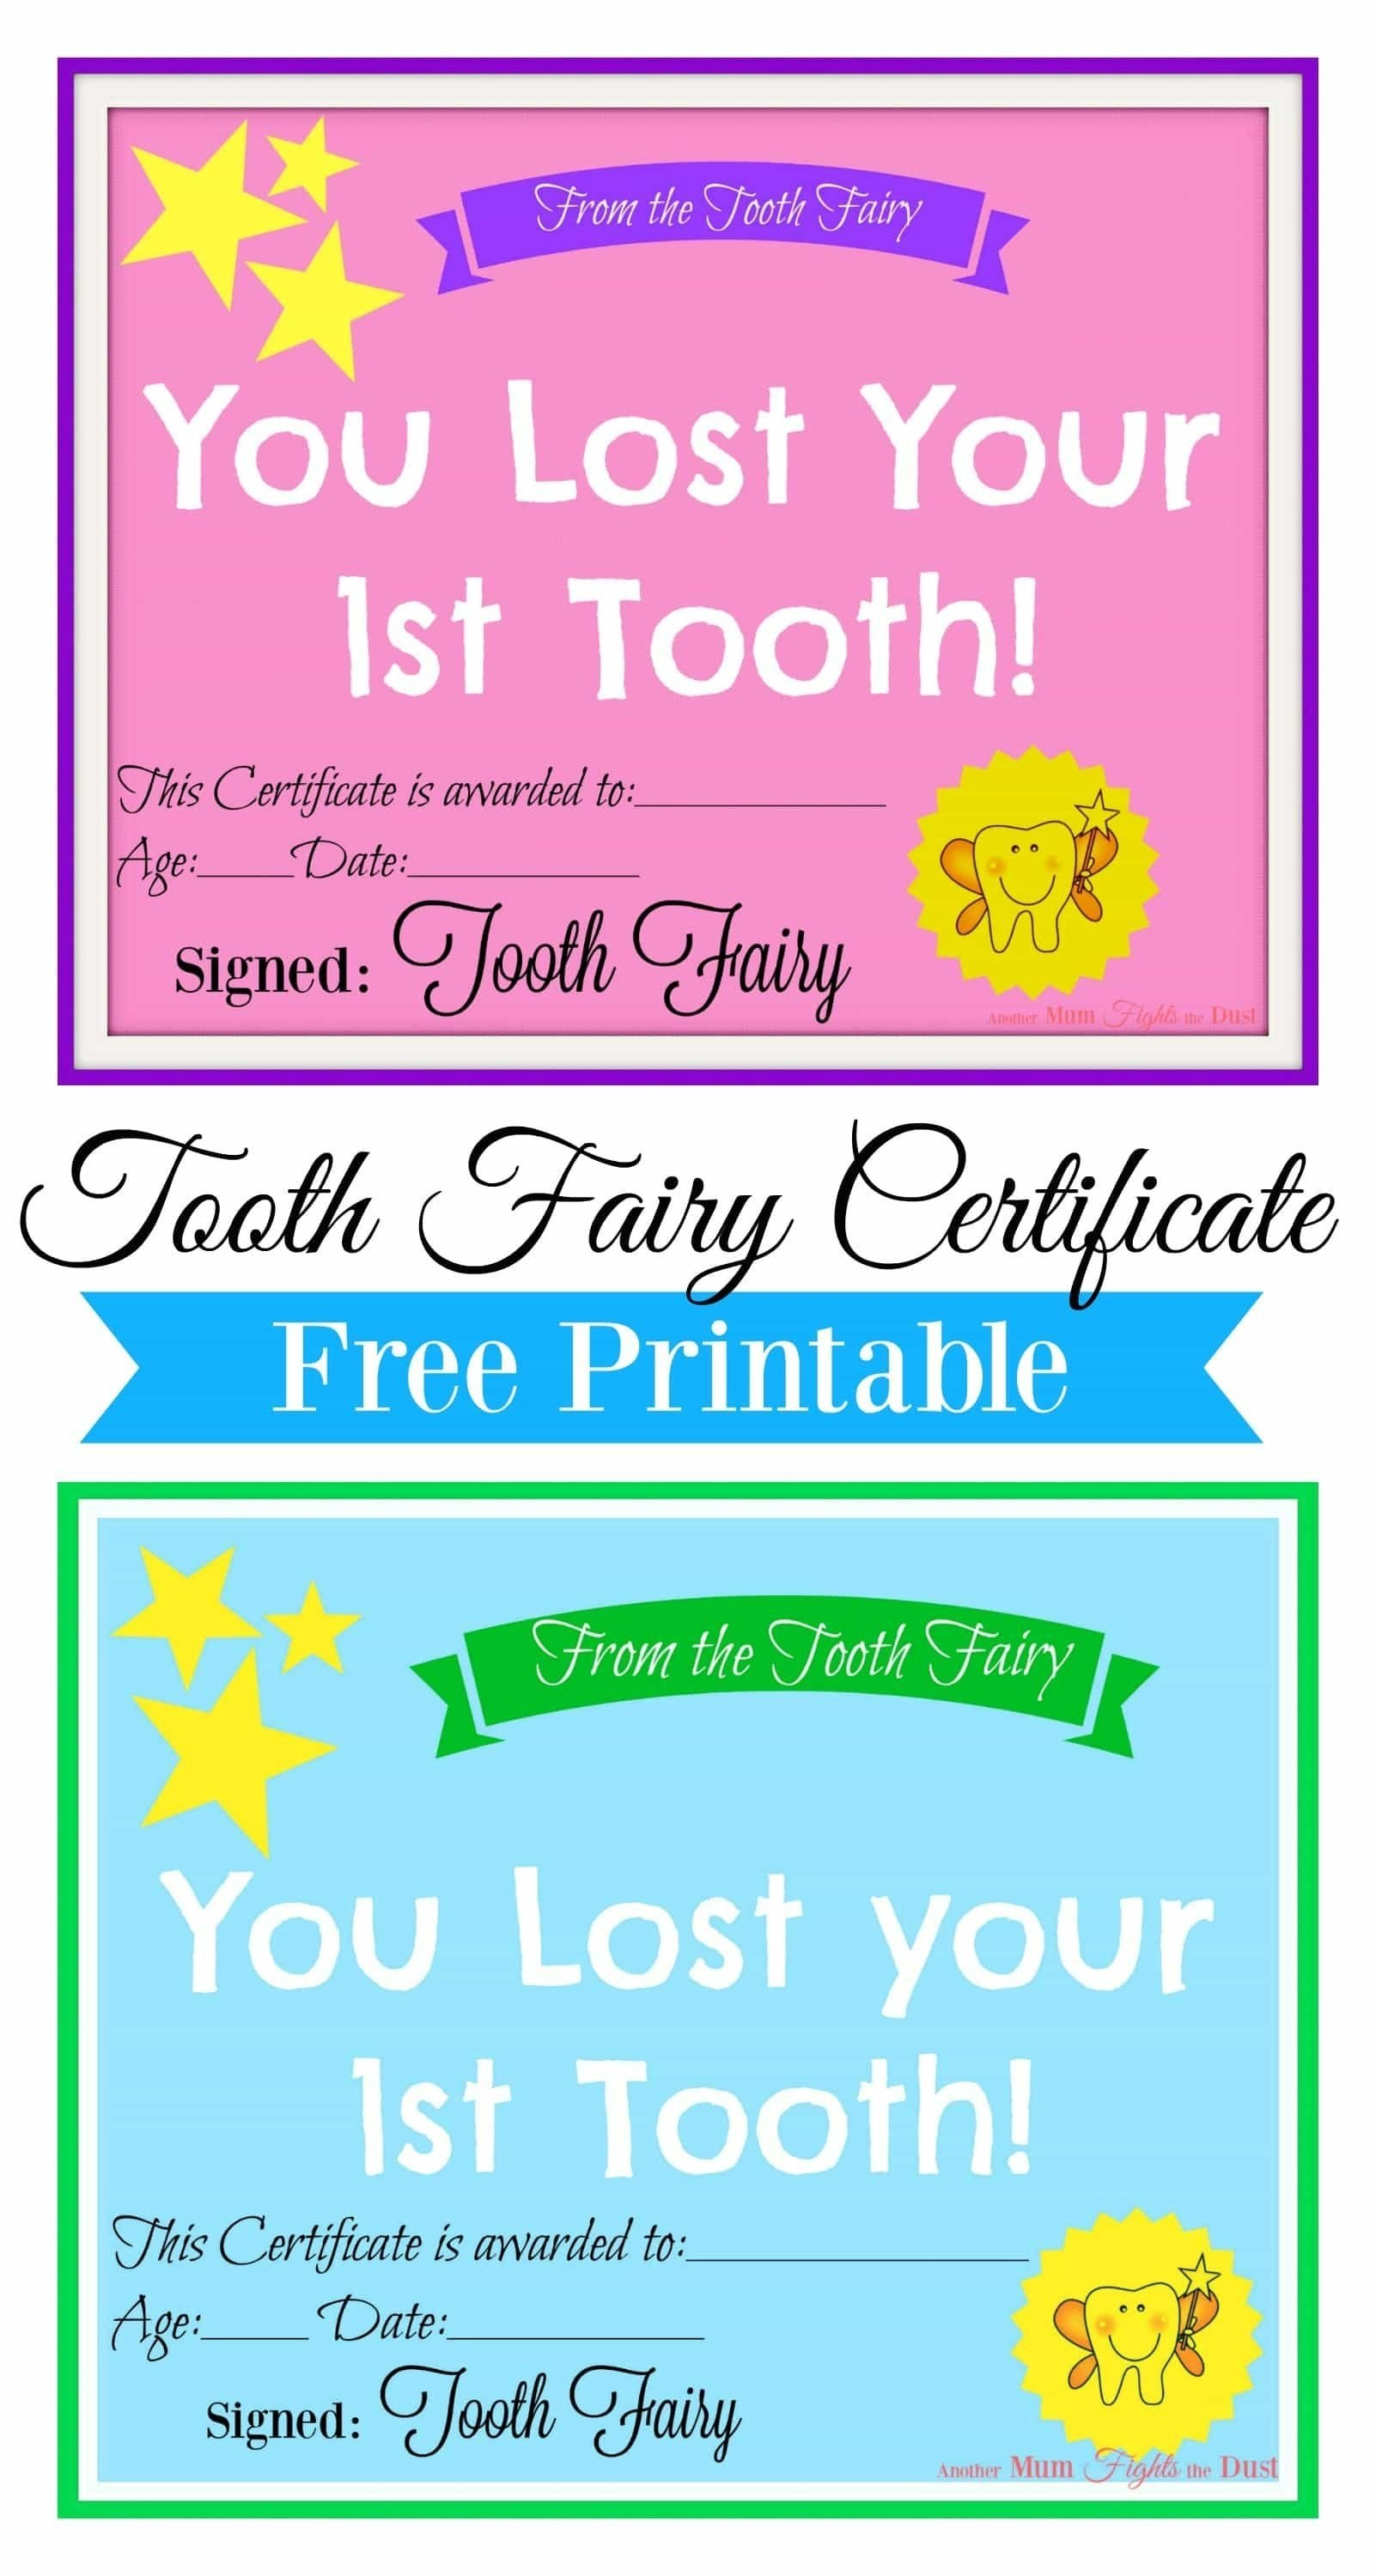 10 Elegant Tooth Fairy Ideas For First Tooth free printable tooth fairy certificate tooth fairy certificate 2020